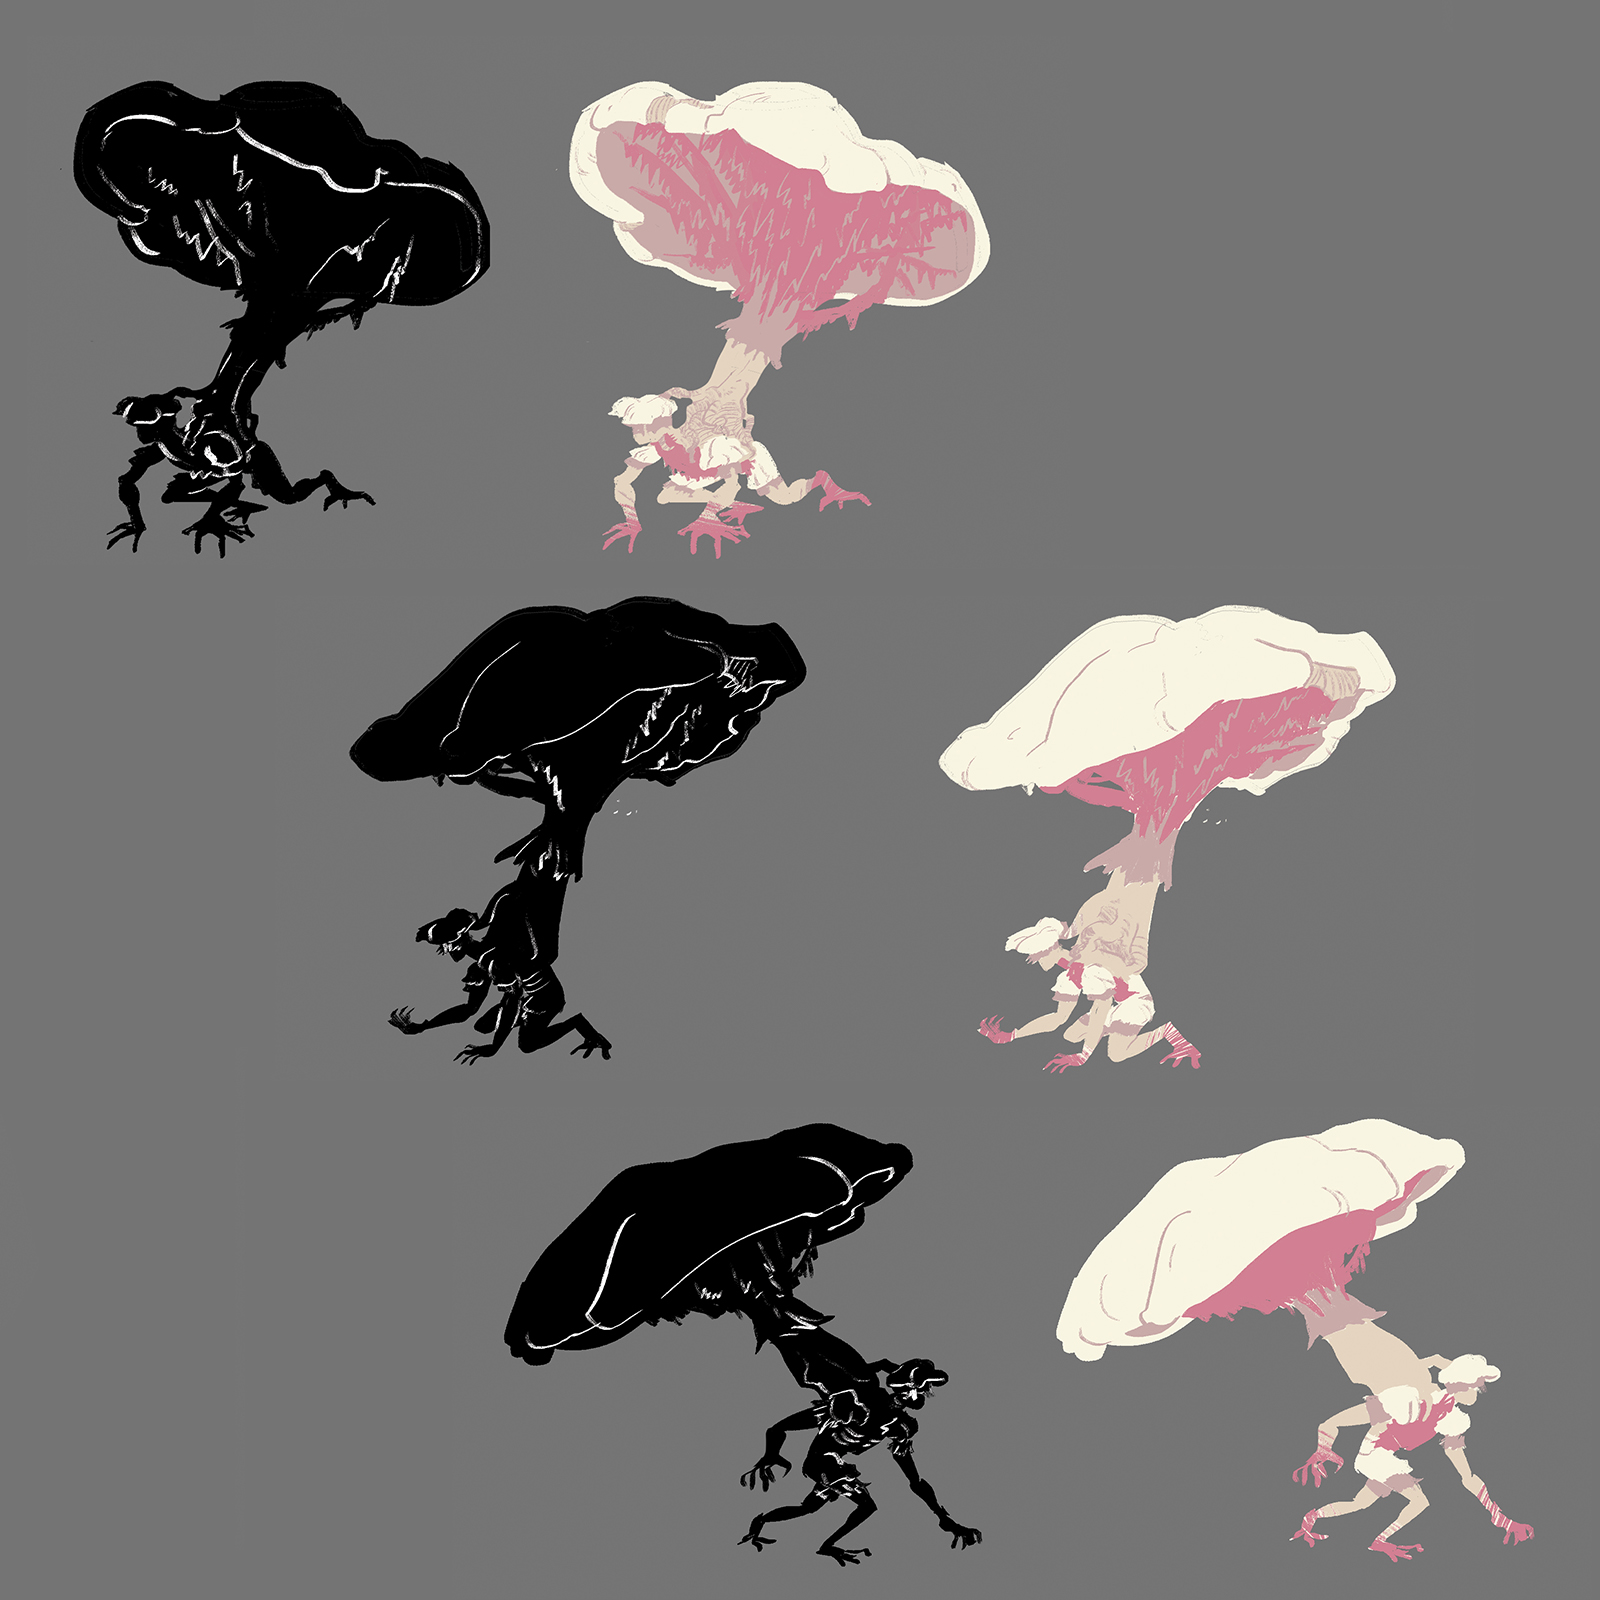 Pose sheet for the sporren concept. The creature is semi-bipedal due to an overwhelming mushroom growing out its back.